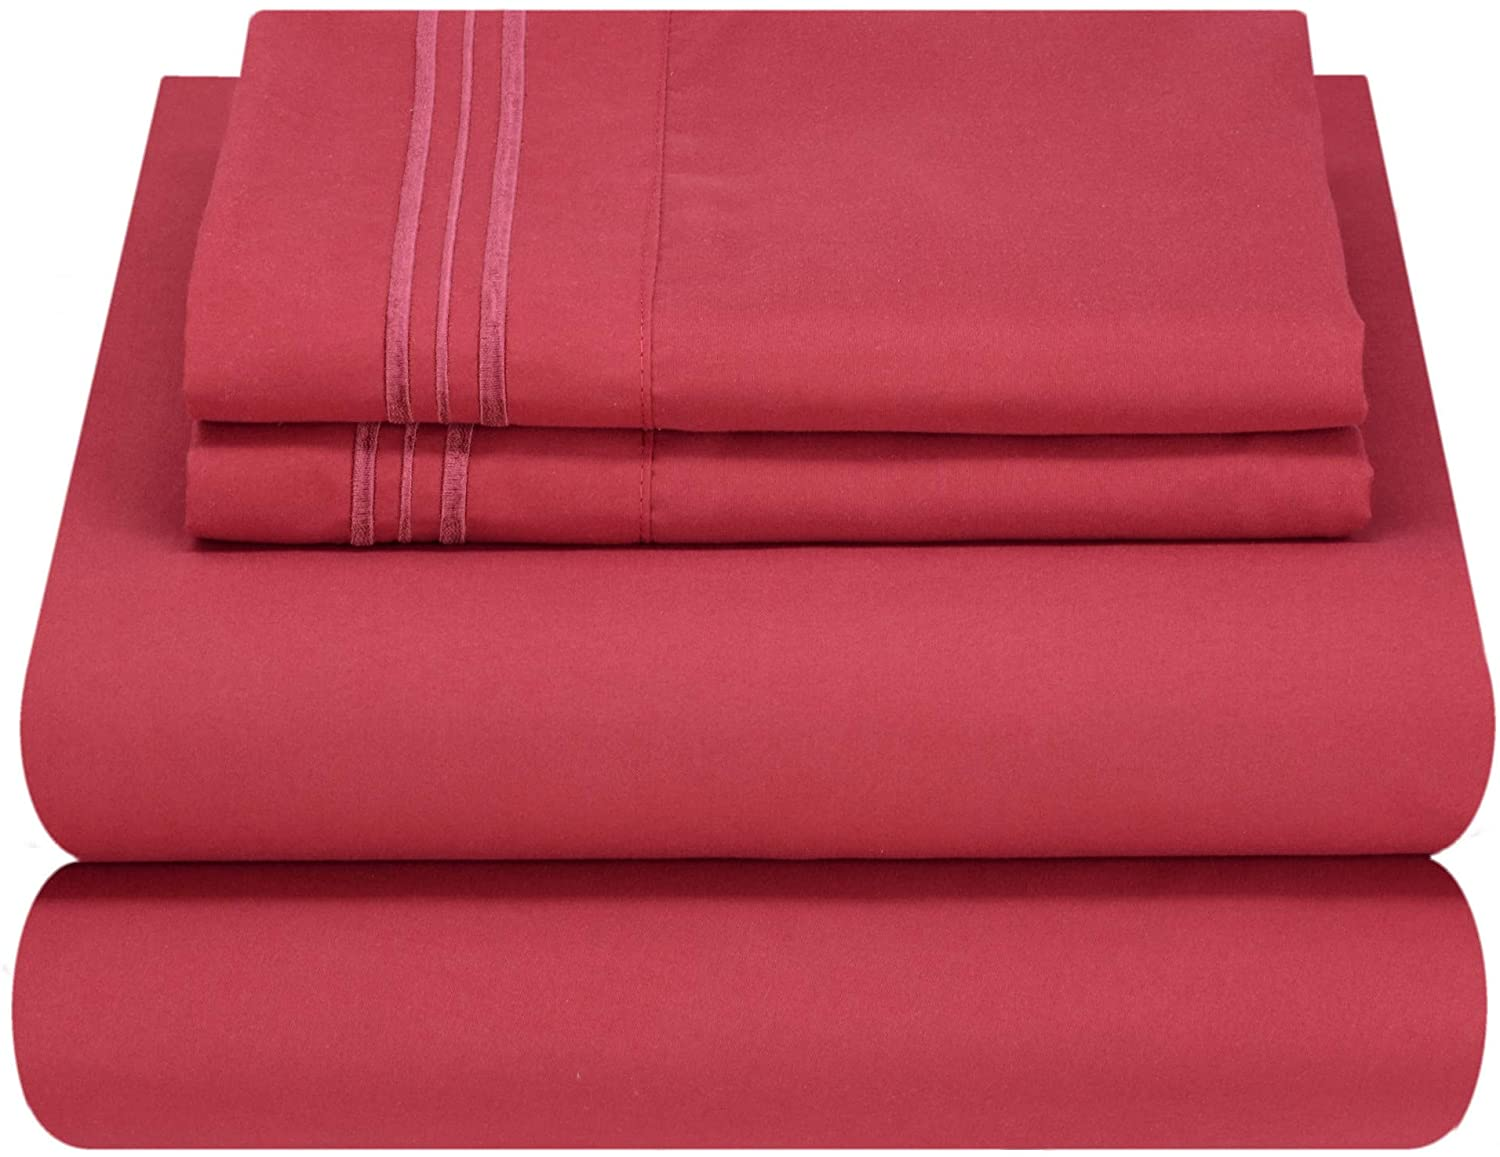 Mezzati Luxury Bed Sheet Set - Soft and Comfortable 1800 Prestige Collection - Brushed Microfiber Bedding (Burgundy, Cal King Size)